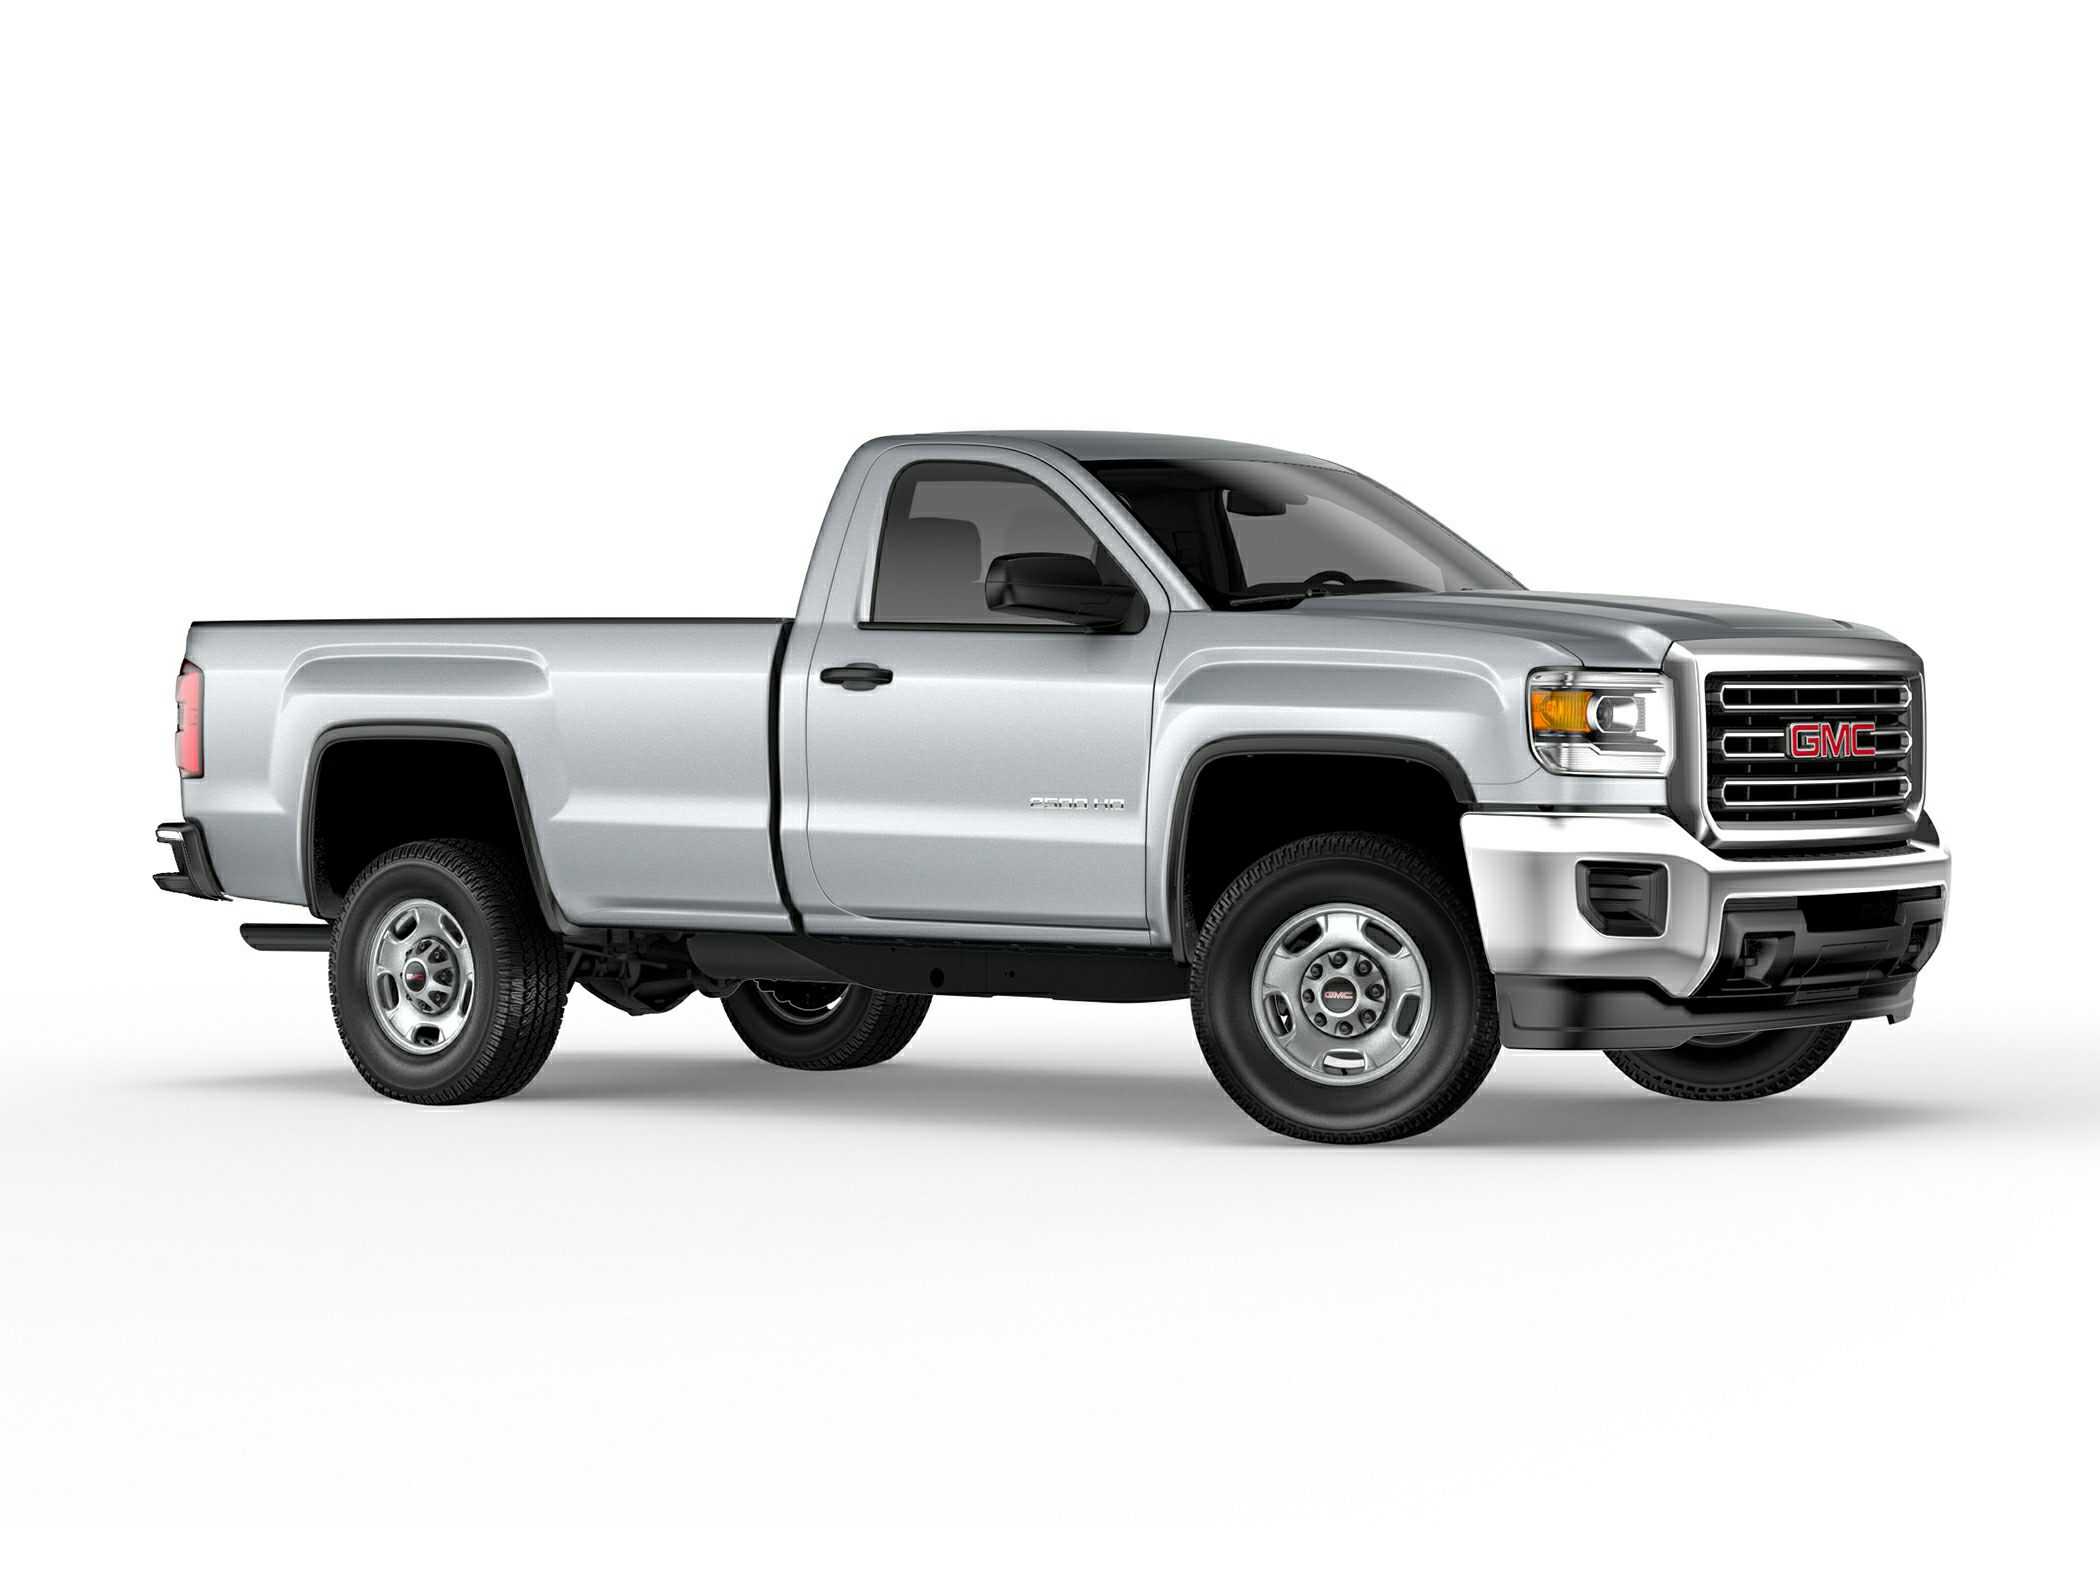 2015 GMC Sierra 3500hd #15